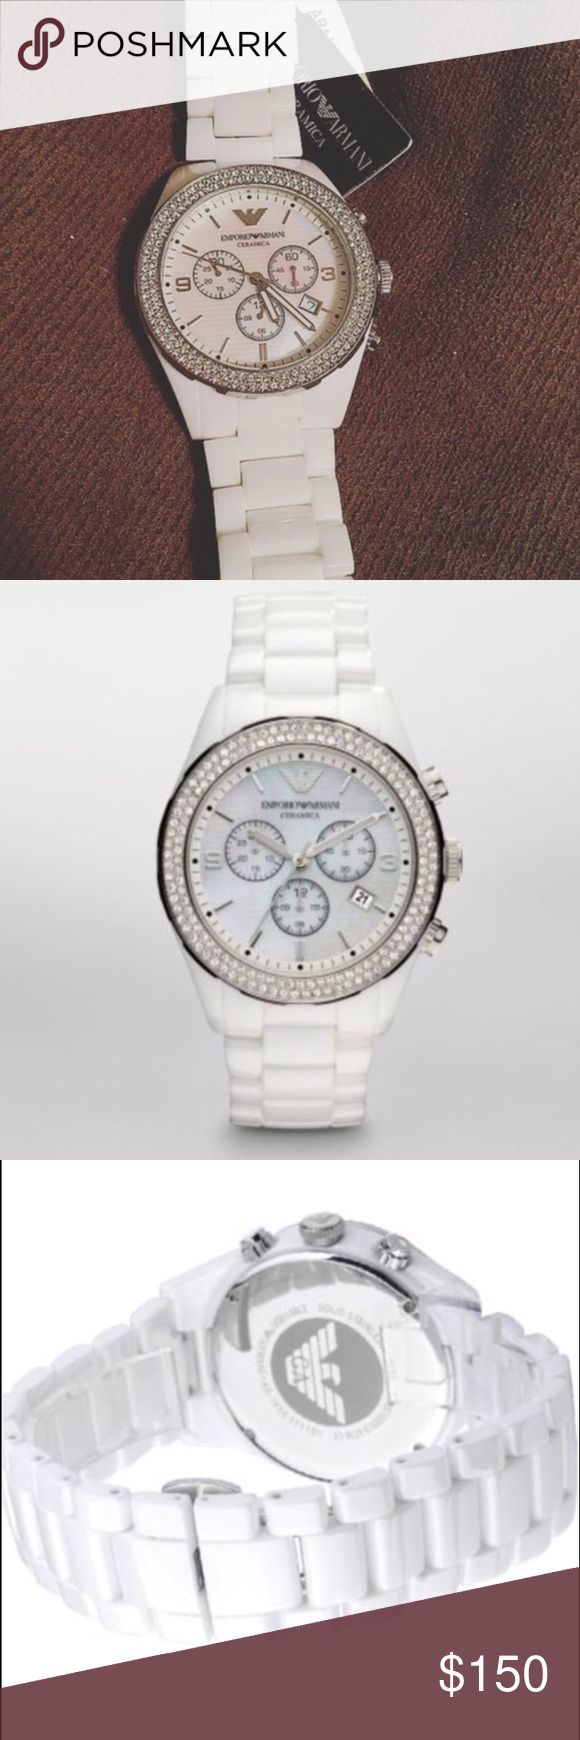 "🎉SALE🎉 Ceramic Armani Watch Women's white ceramic Emporio Armani watch. Has two rows of Swarovski crystals around the bezel, mother of pearl face, and chronograph feature. Watch is NEW with defects. Never warn, new with tags! However, the chronograph (stopwatch function) resets to the ""10"" hand instead of ""12"" hand. Battery works, everything is in excellent condition! Original AR box not included. Authentic. No trades! Emporio Armani Accessories Watches"